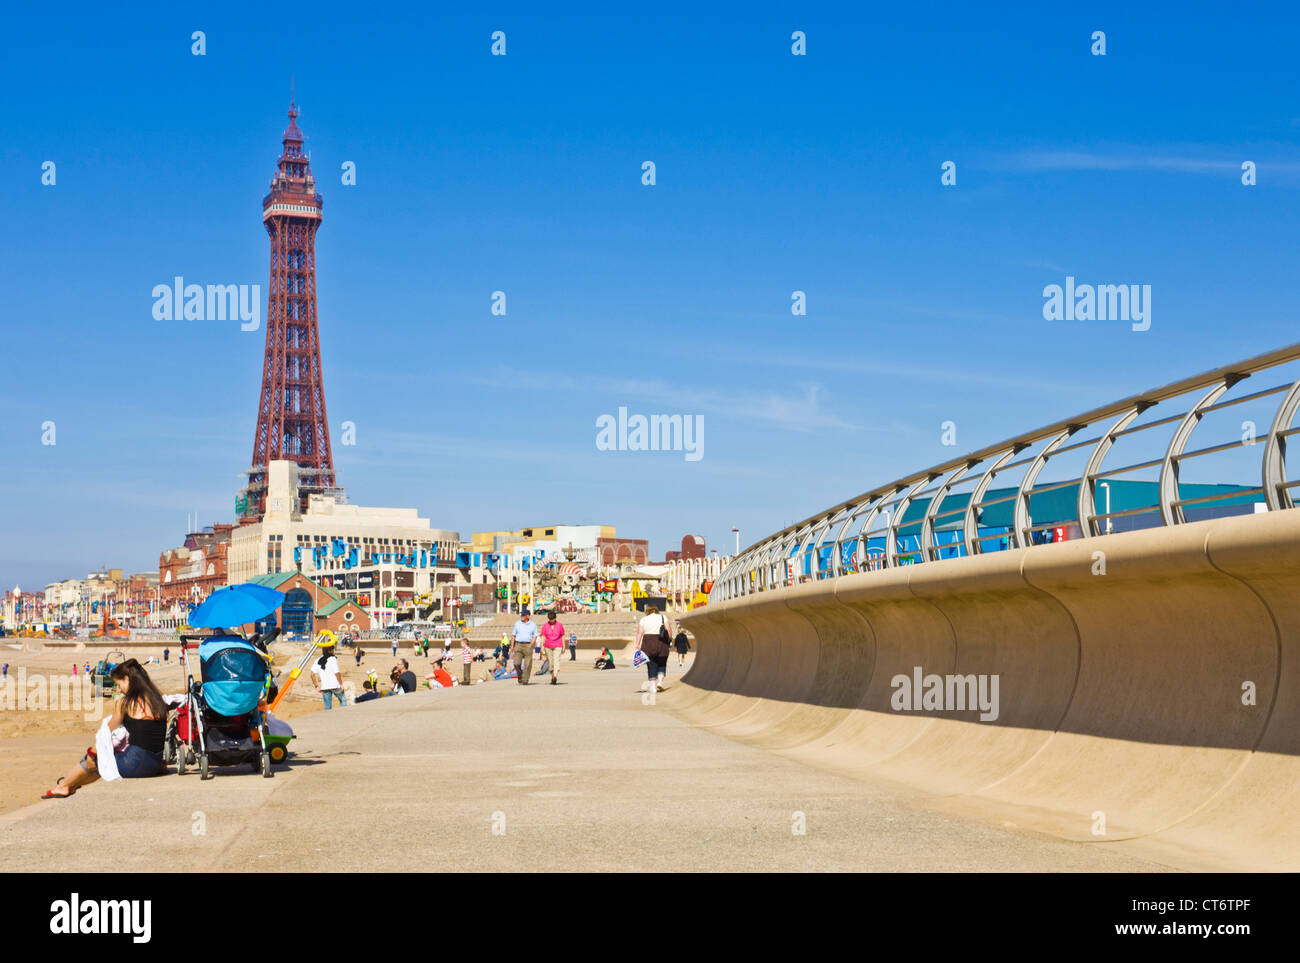 Blackpool tower beach and new seafront promenade Blackpool Lancashire England GB UK Europe Stock Photo